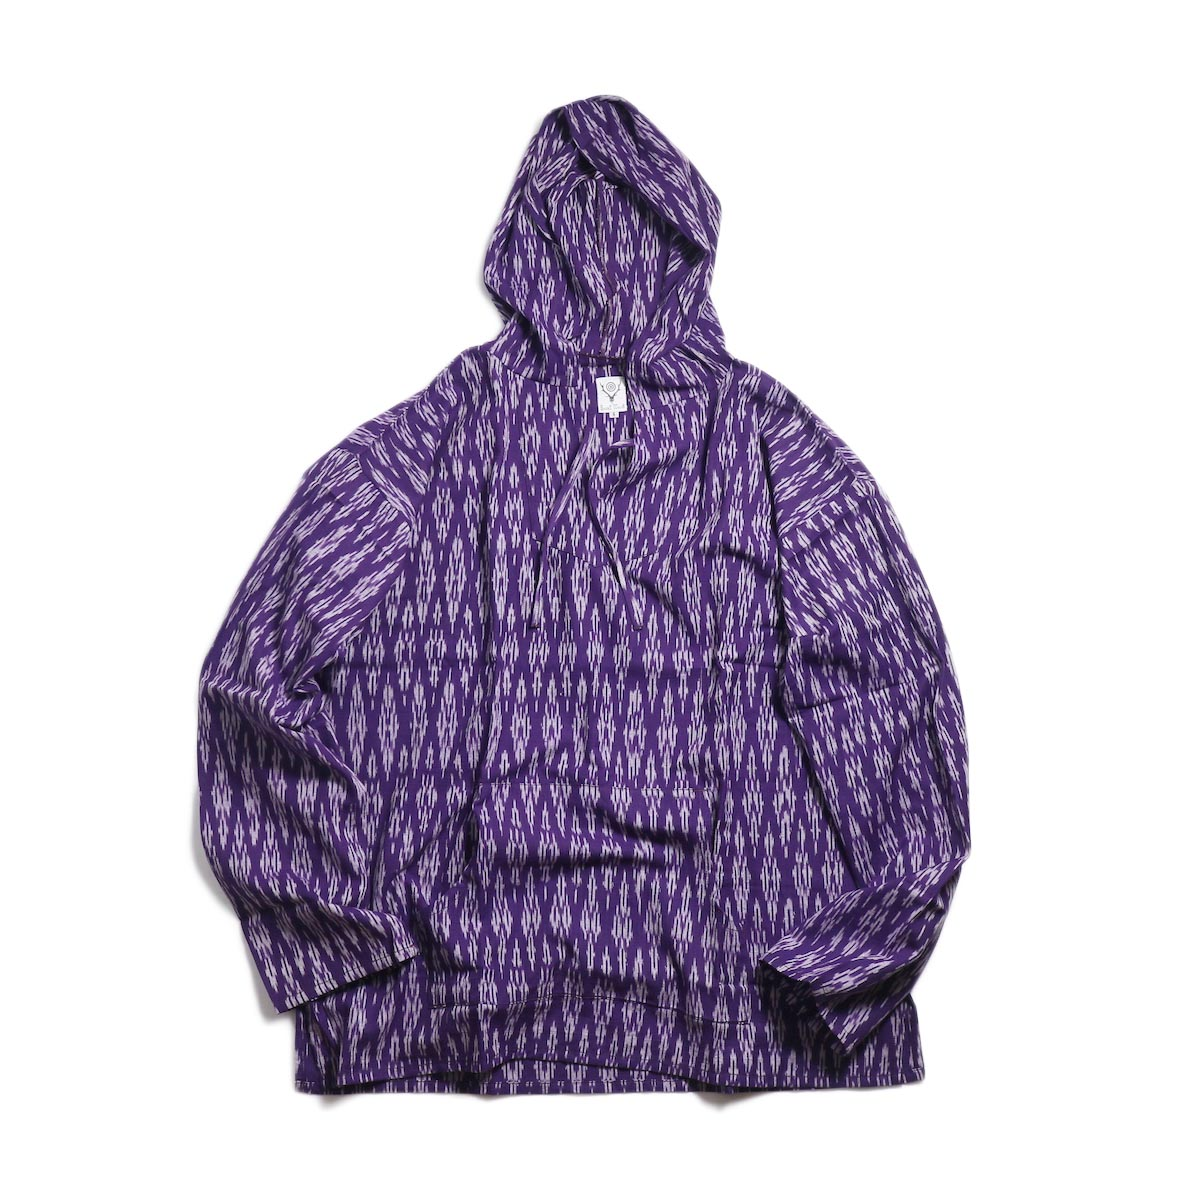 SOUTH2 WEST8 / Mexican Parka -Cotton Cloth / Splashed Pattern (Purple) 正面